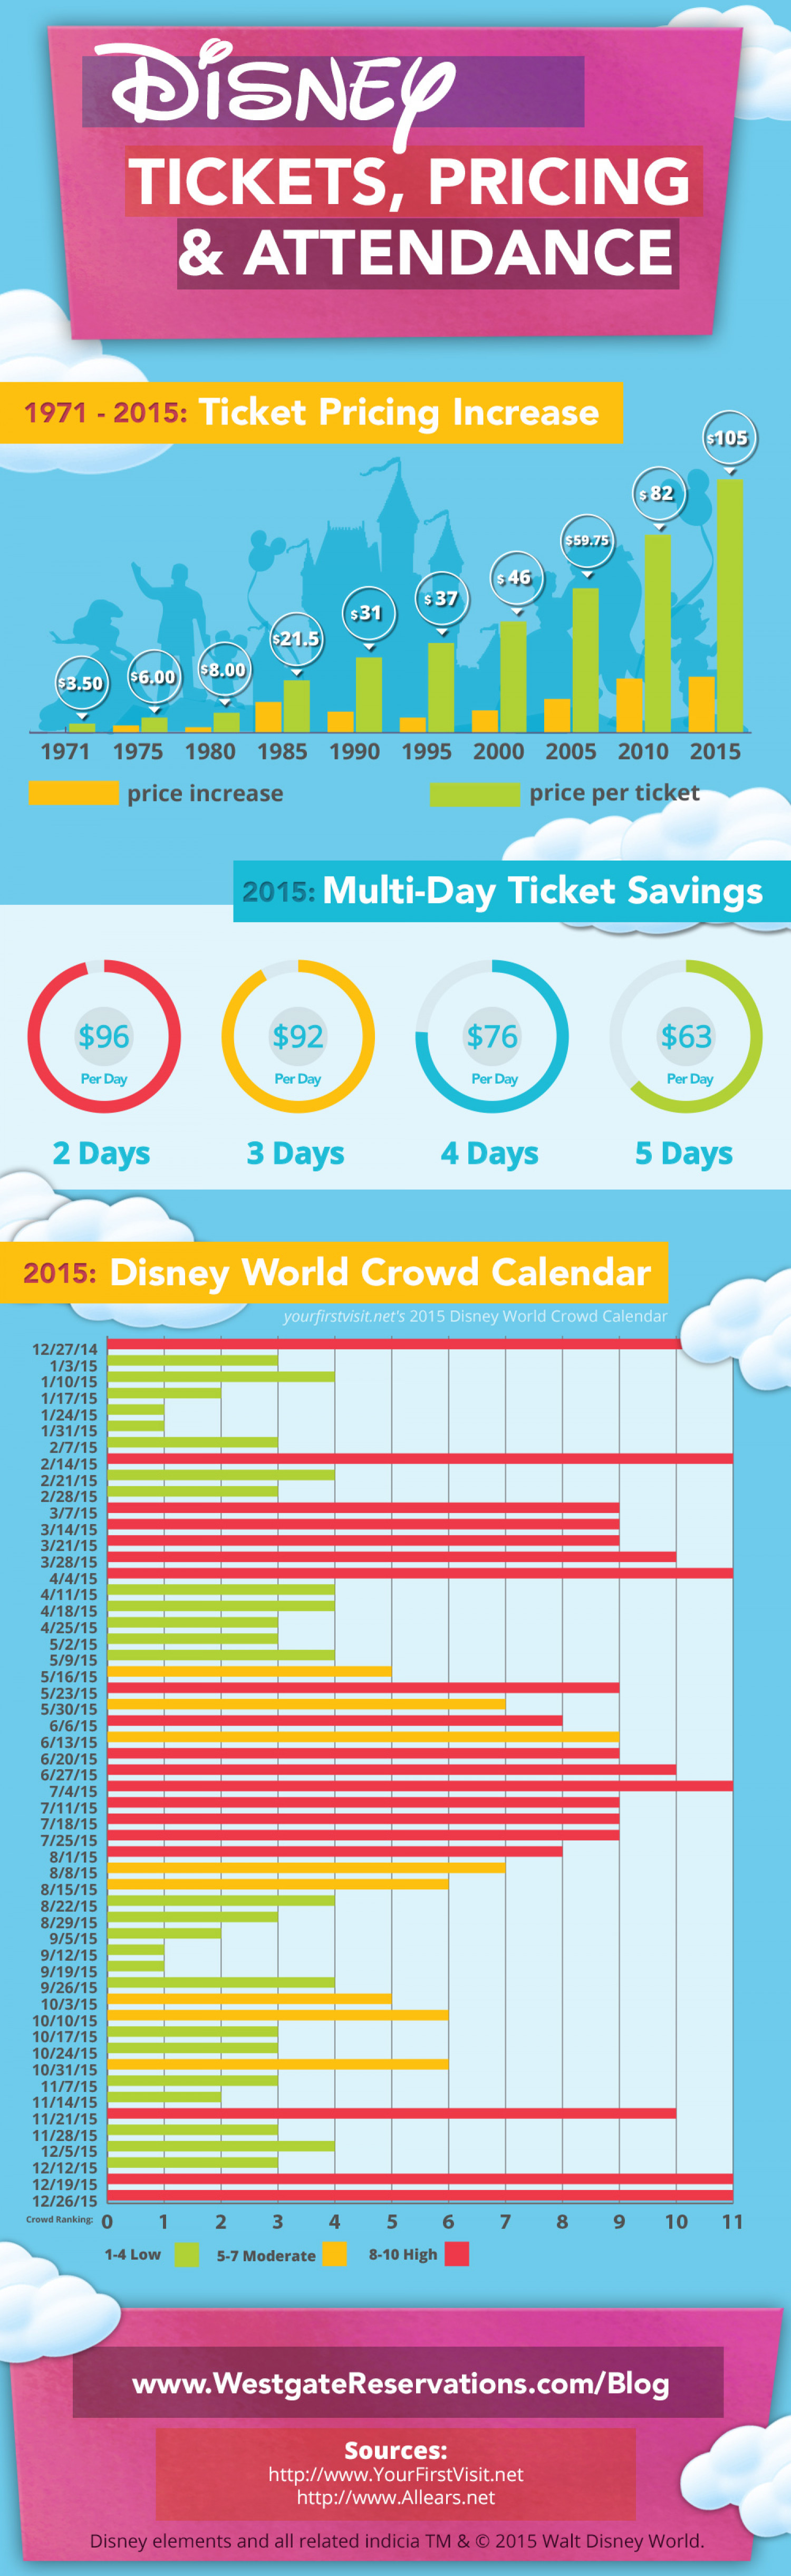 Disney Tickets, Pricing & Attendance Infographic